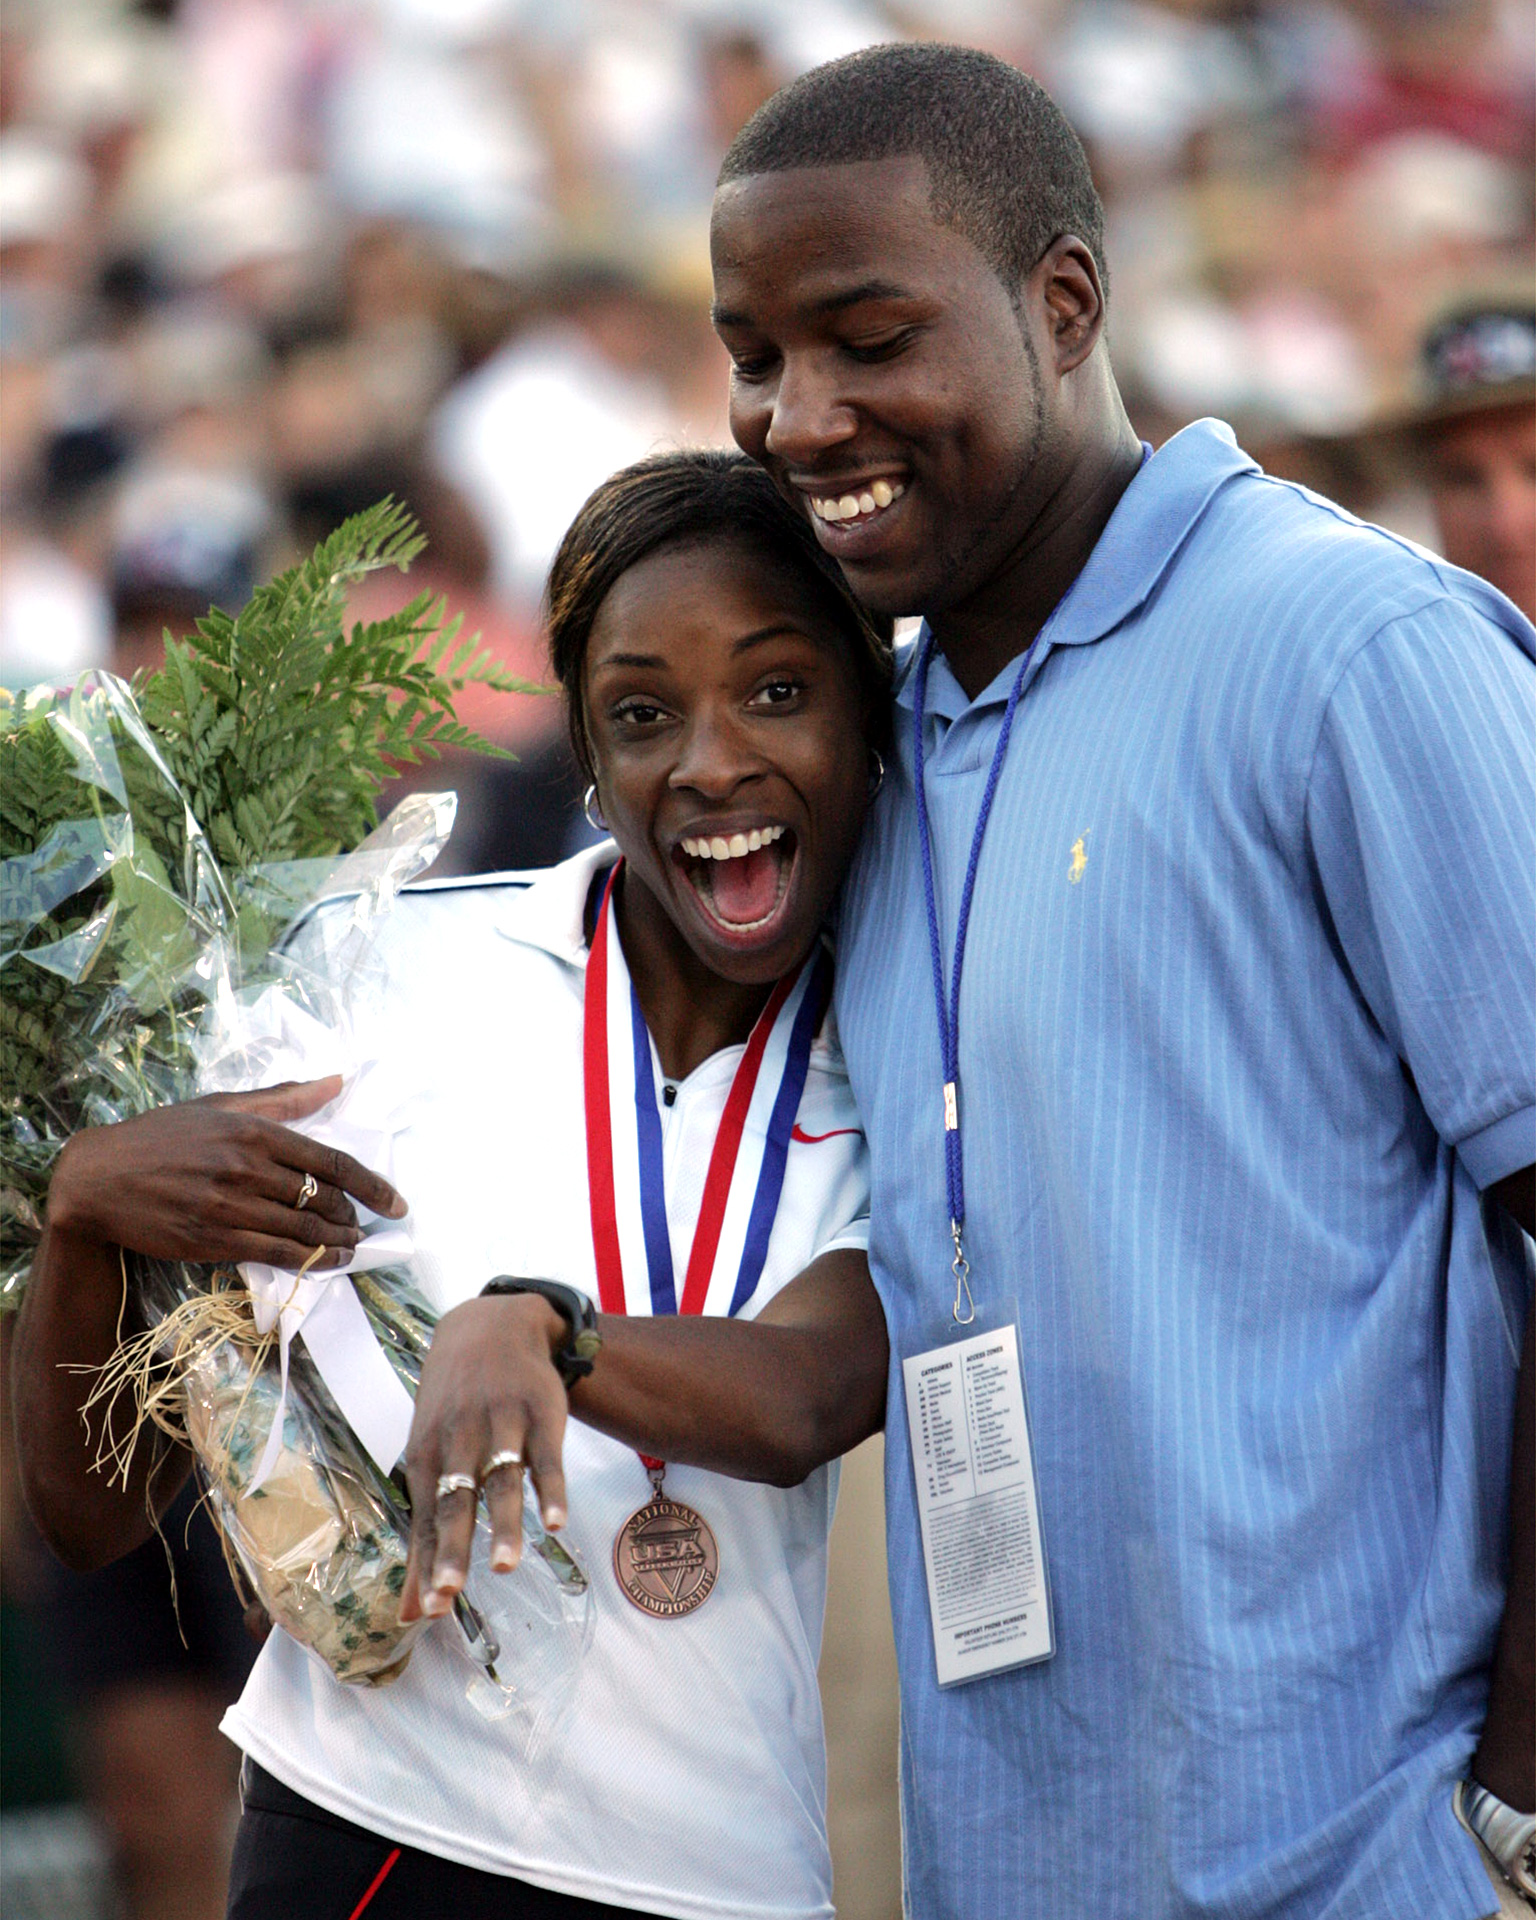 The 2004 U.S. Olympic Track & Field trials were an all-around success for Hazel Clark. She won the bronze medal in the 800 meters, earned a trip to the Athens Olympics and sported a ring after Winston Riley proposed to her while she was on the podium.